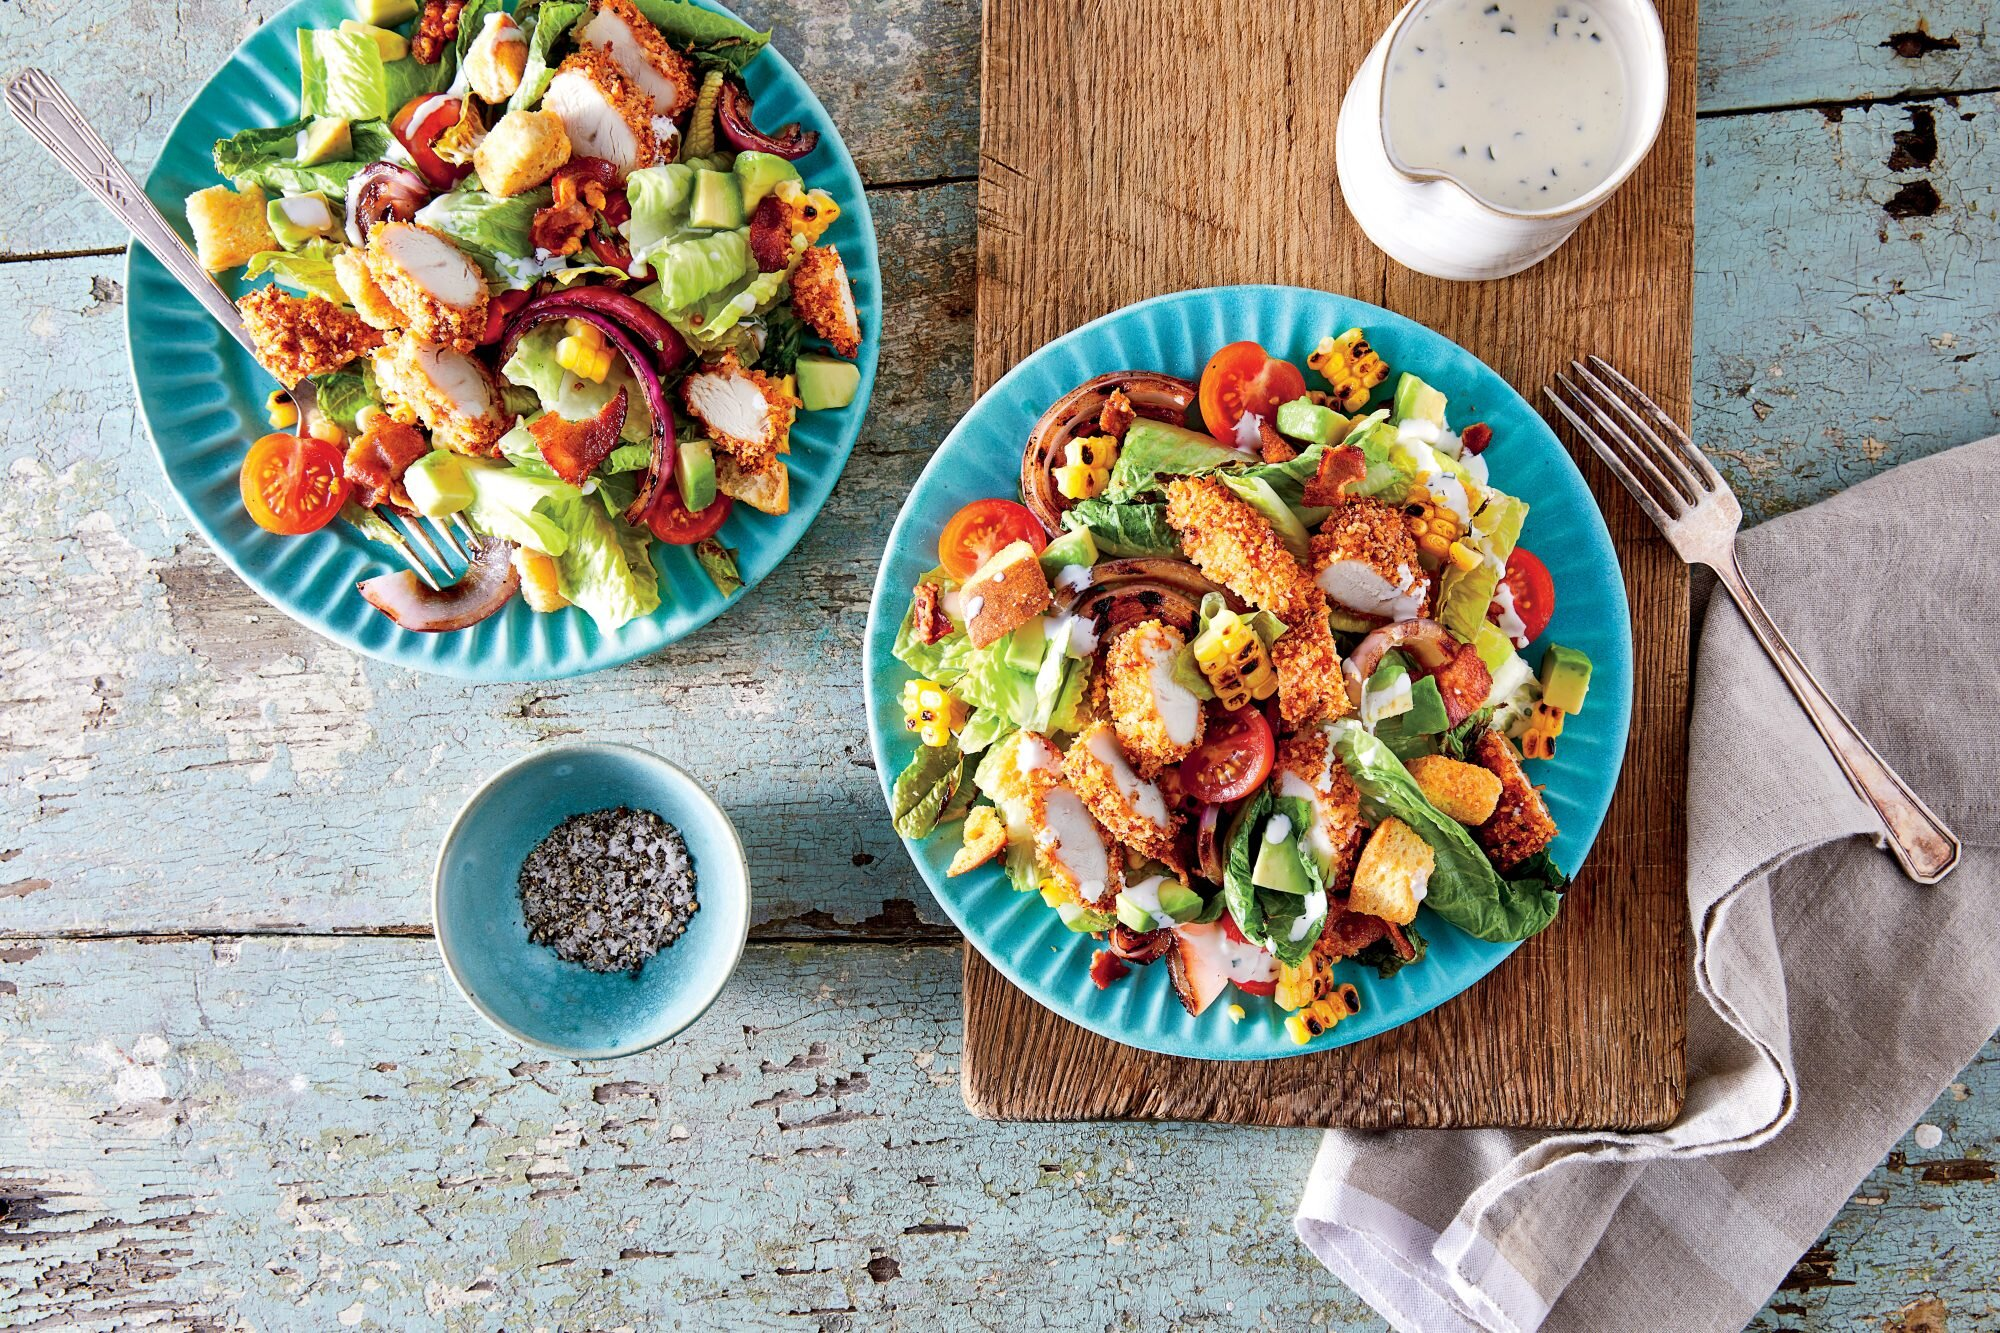 Quick Fix Salads To Serve For Delicious Weeknight Suppers